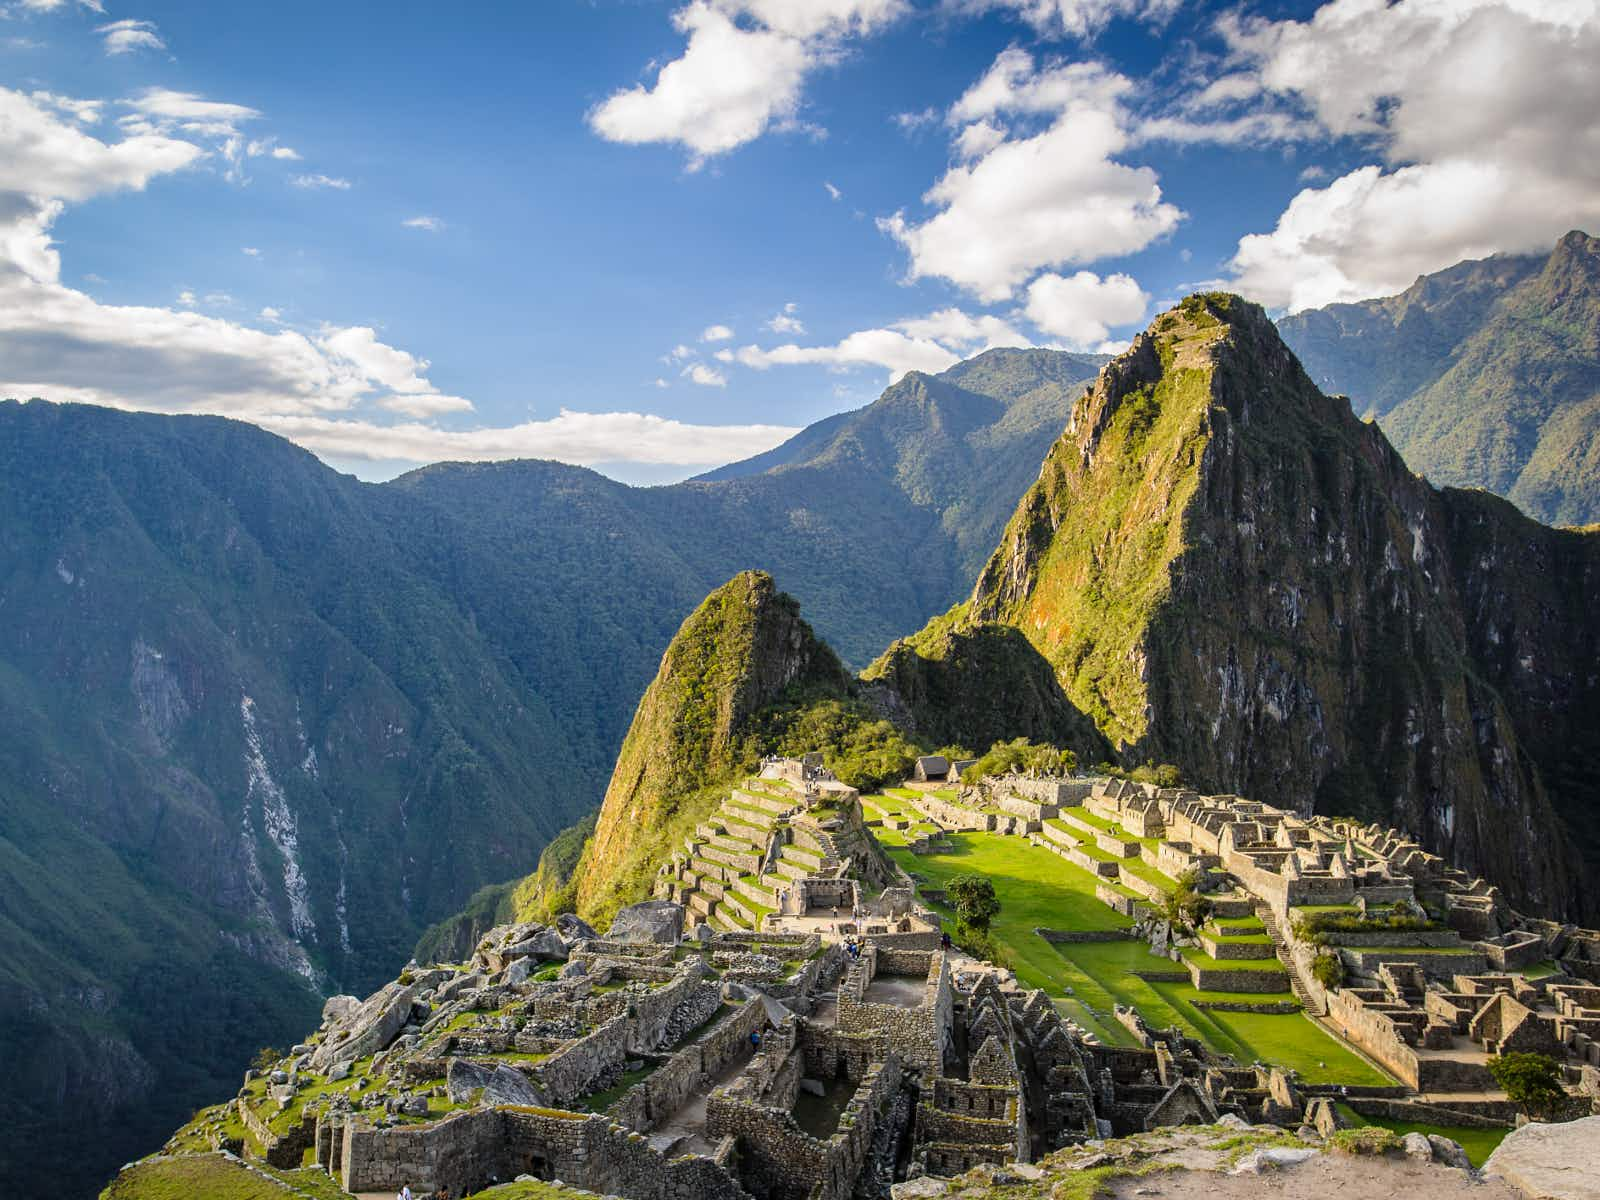 Minding Machu Picchu: how to see Peru's most famous ruins responsibly